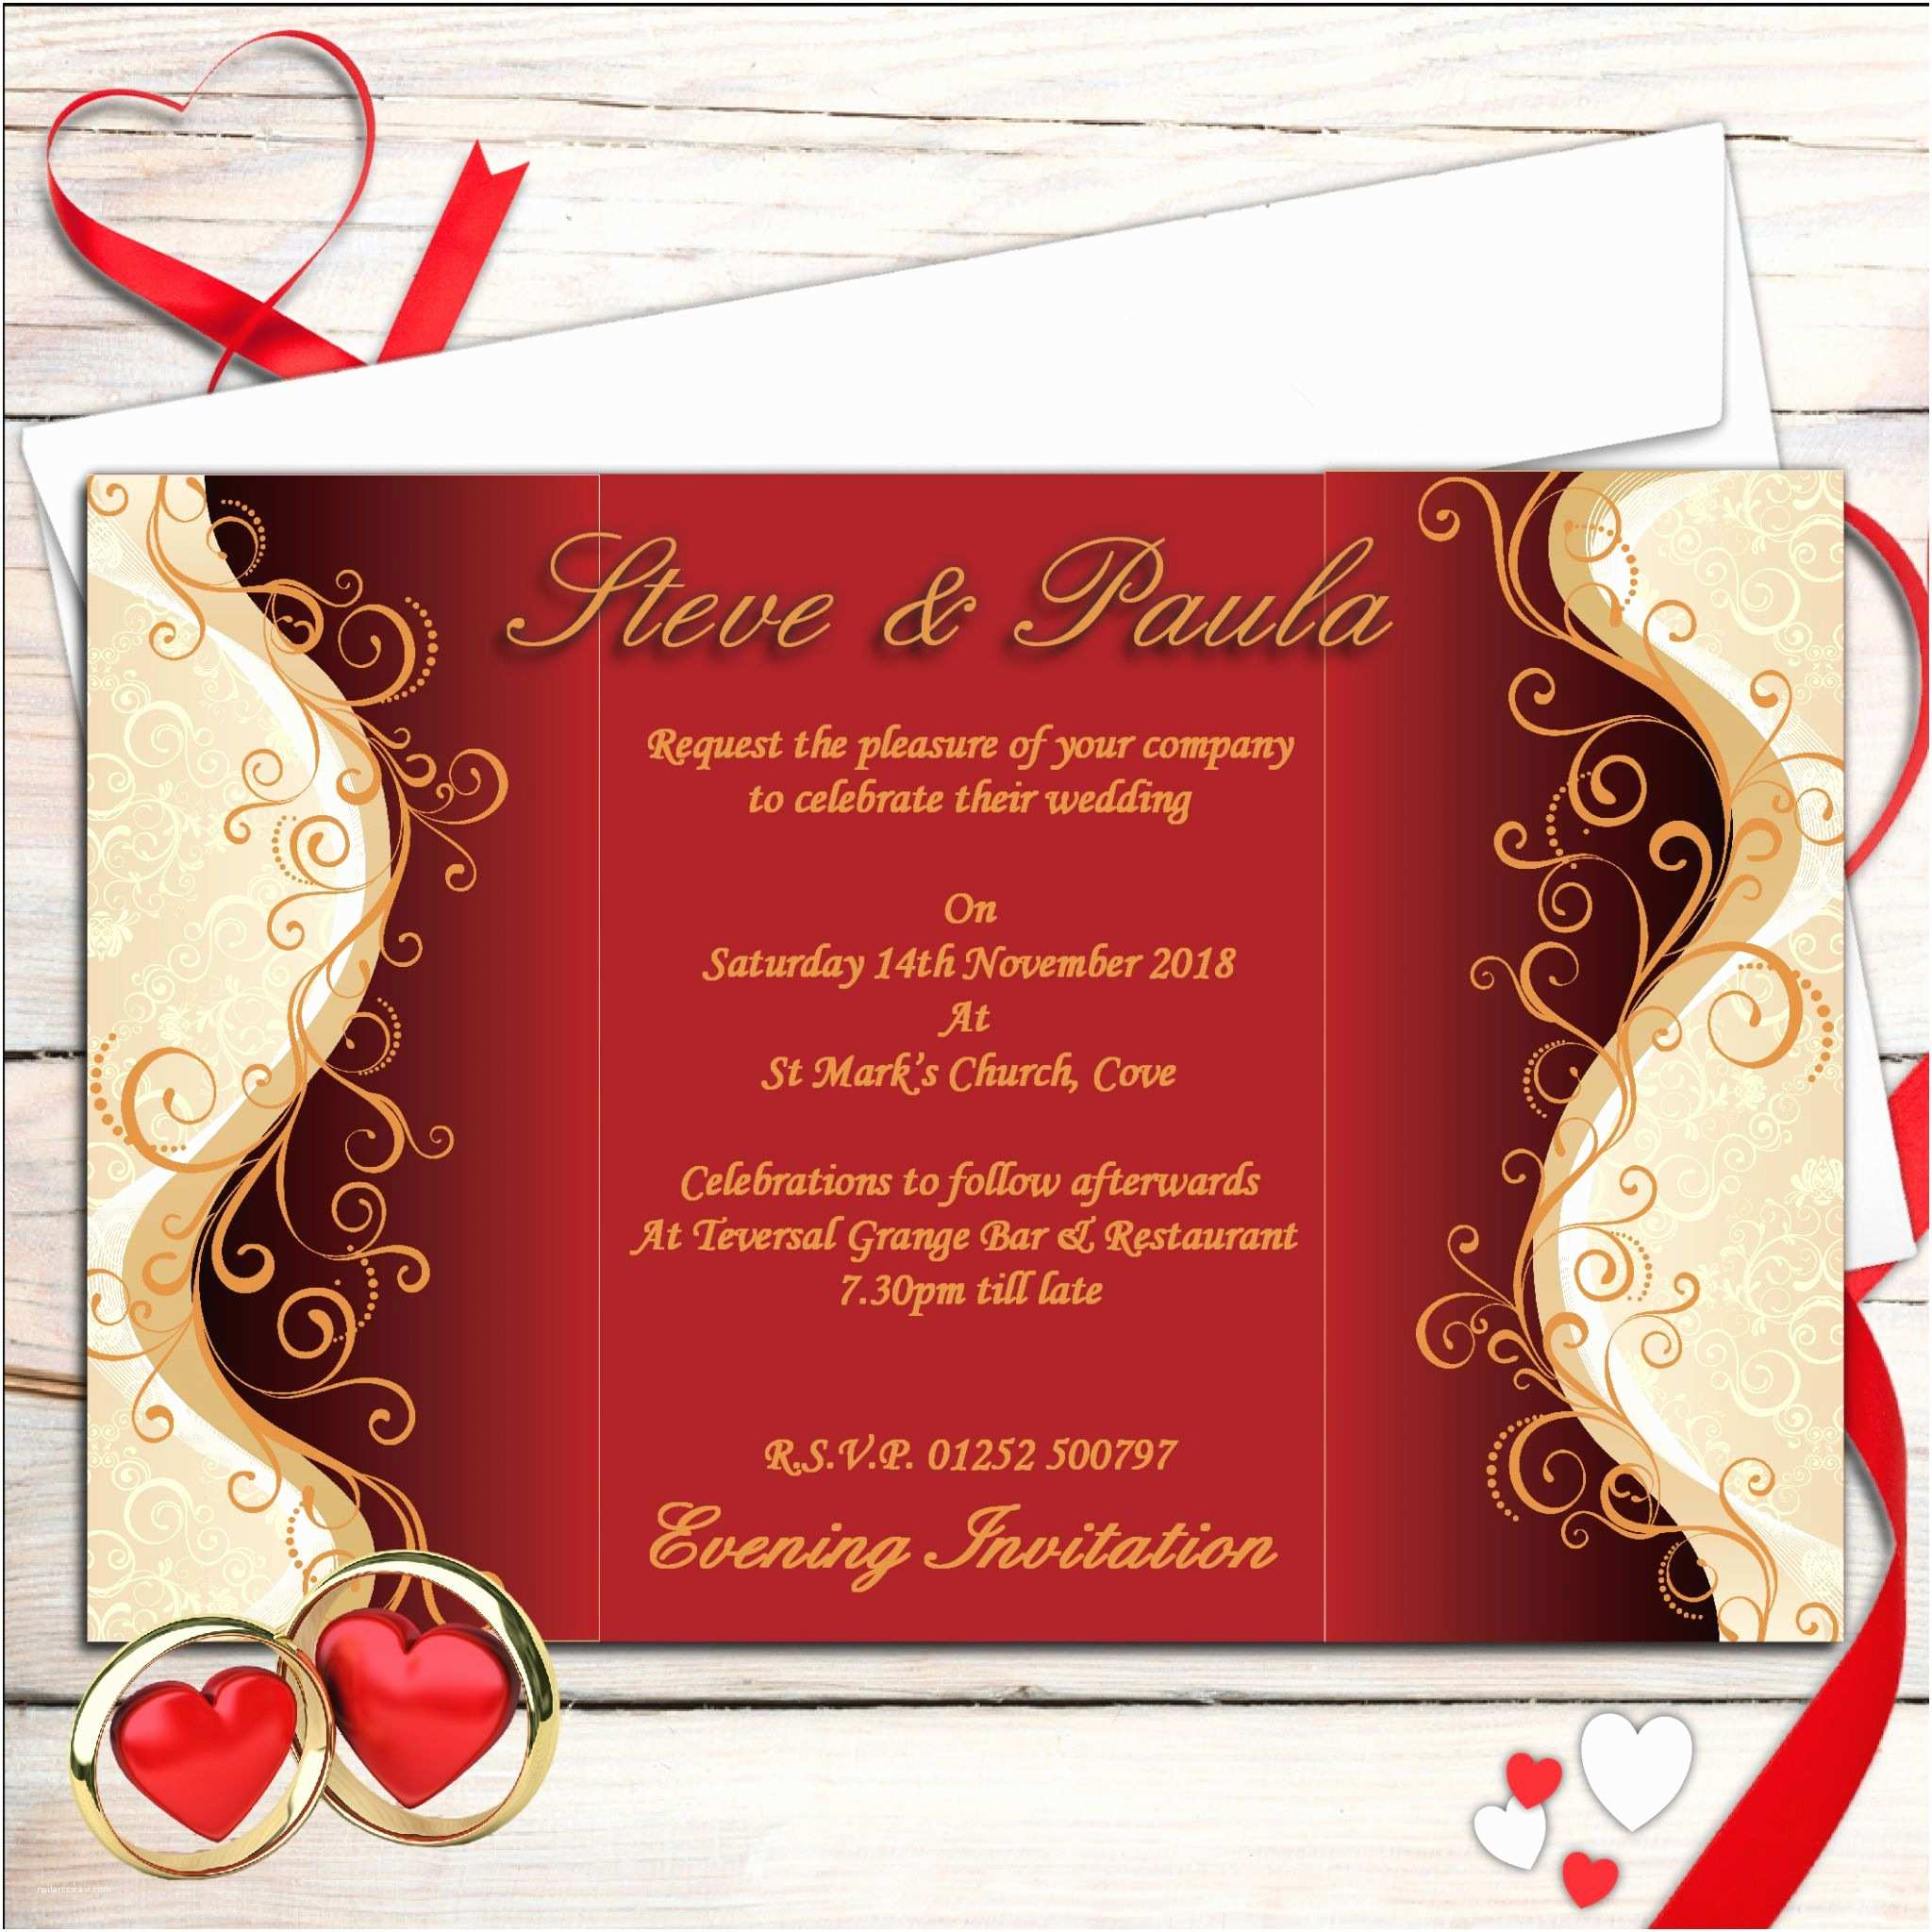 Red White and Gold Wedding Invitations 10 Personalised Red & Gold Wedding Invitations Day evening